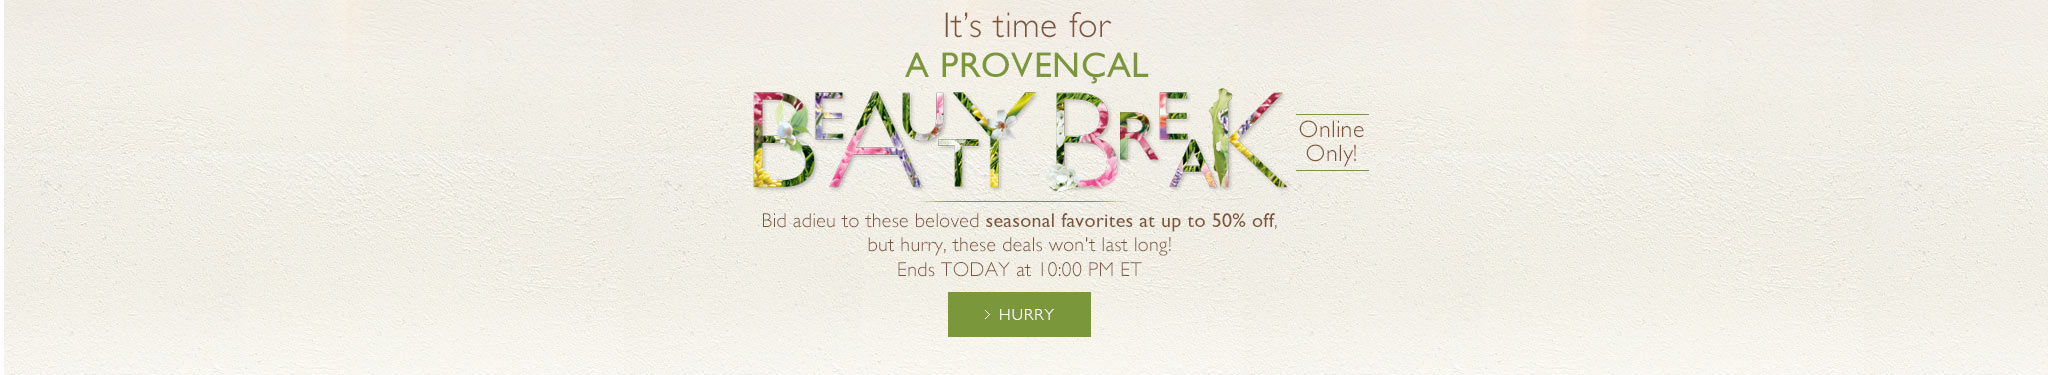 IT's Time for a Provencal Beauty Break.Online only! Bid adieu to these beloved seasonal favorites at up to 50%off, but hurry, these deals won't last long ! Ends TODAY at 10:00 PM ET